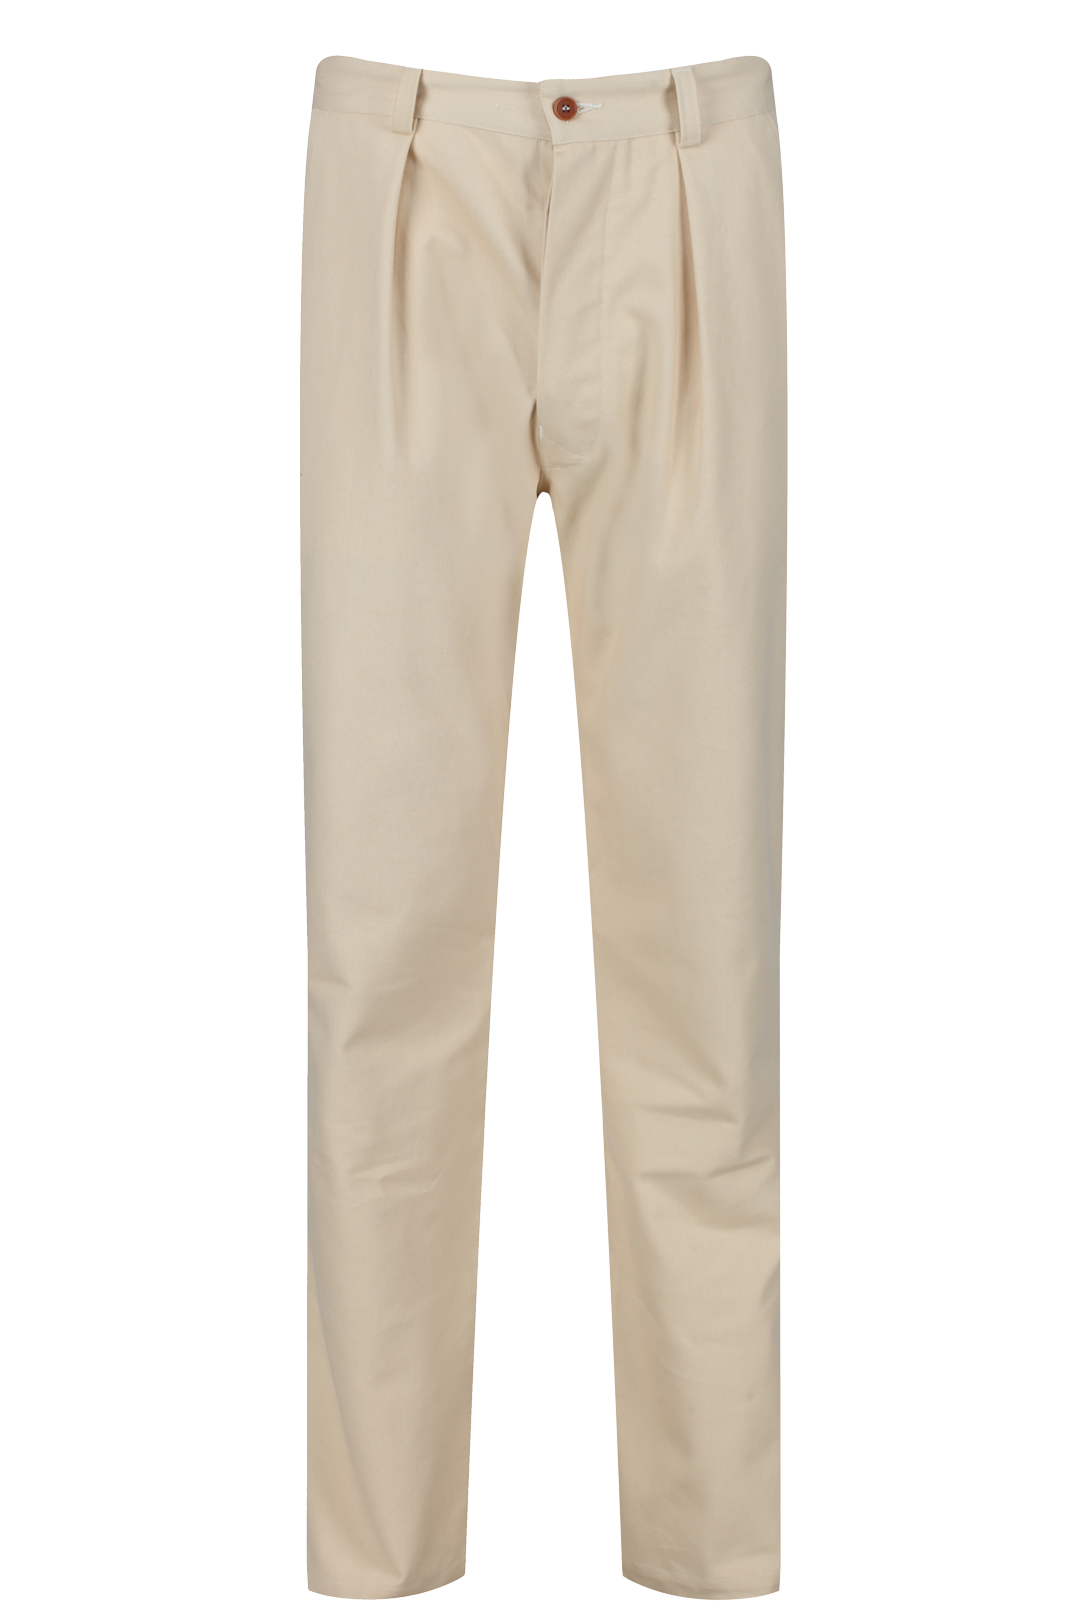 1930s canvas beach trouser